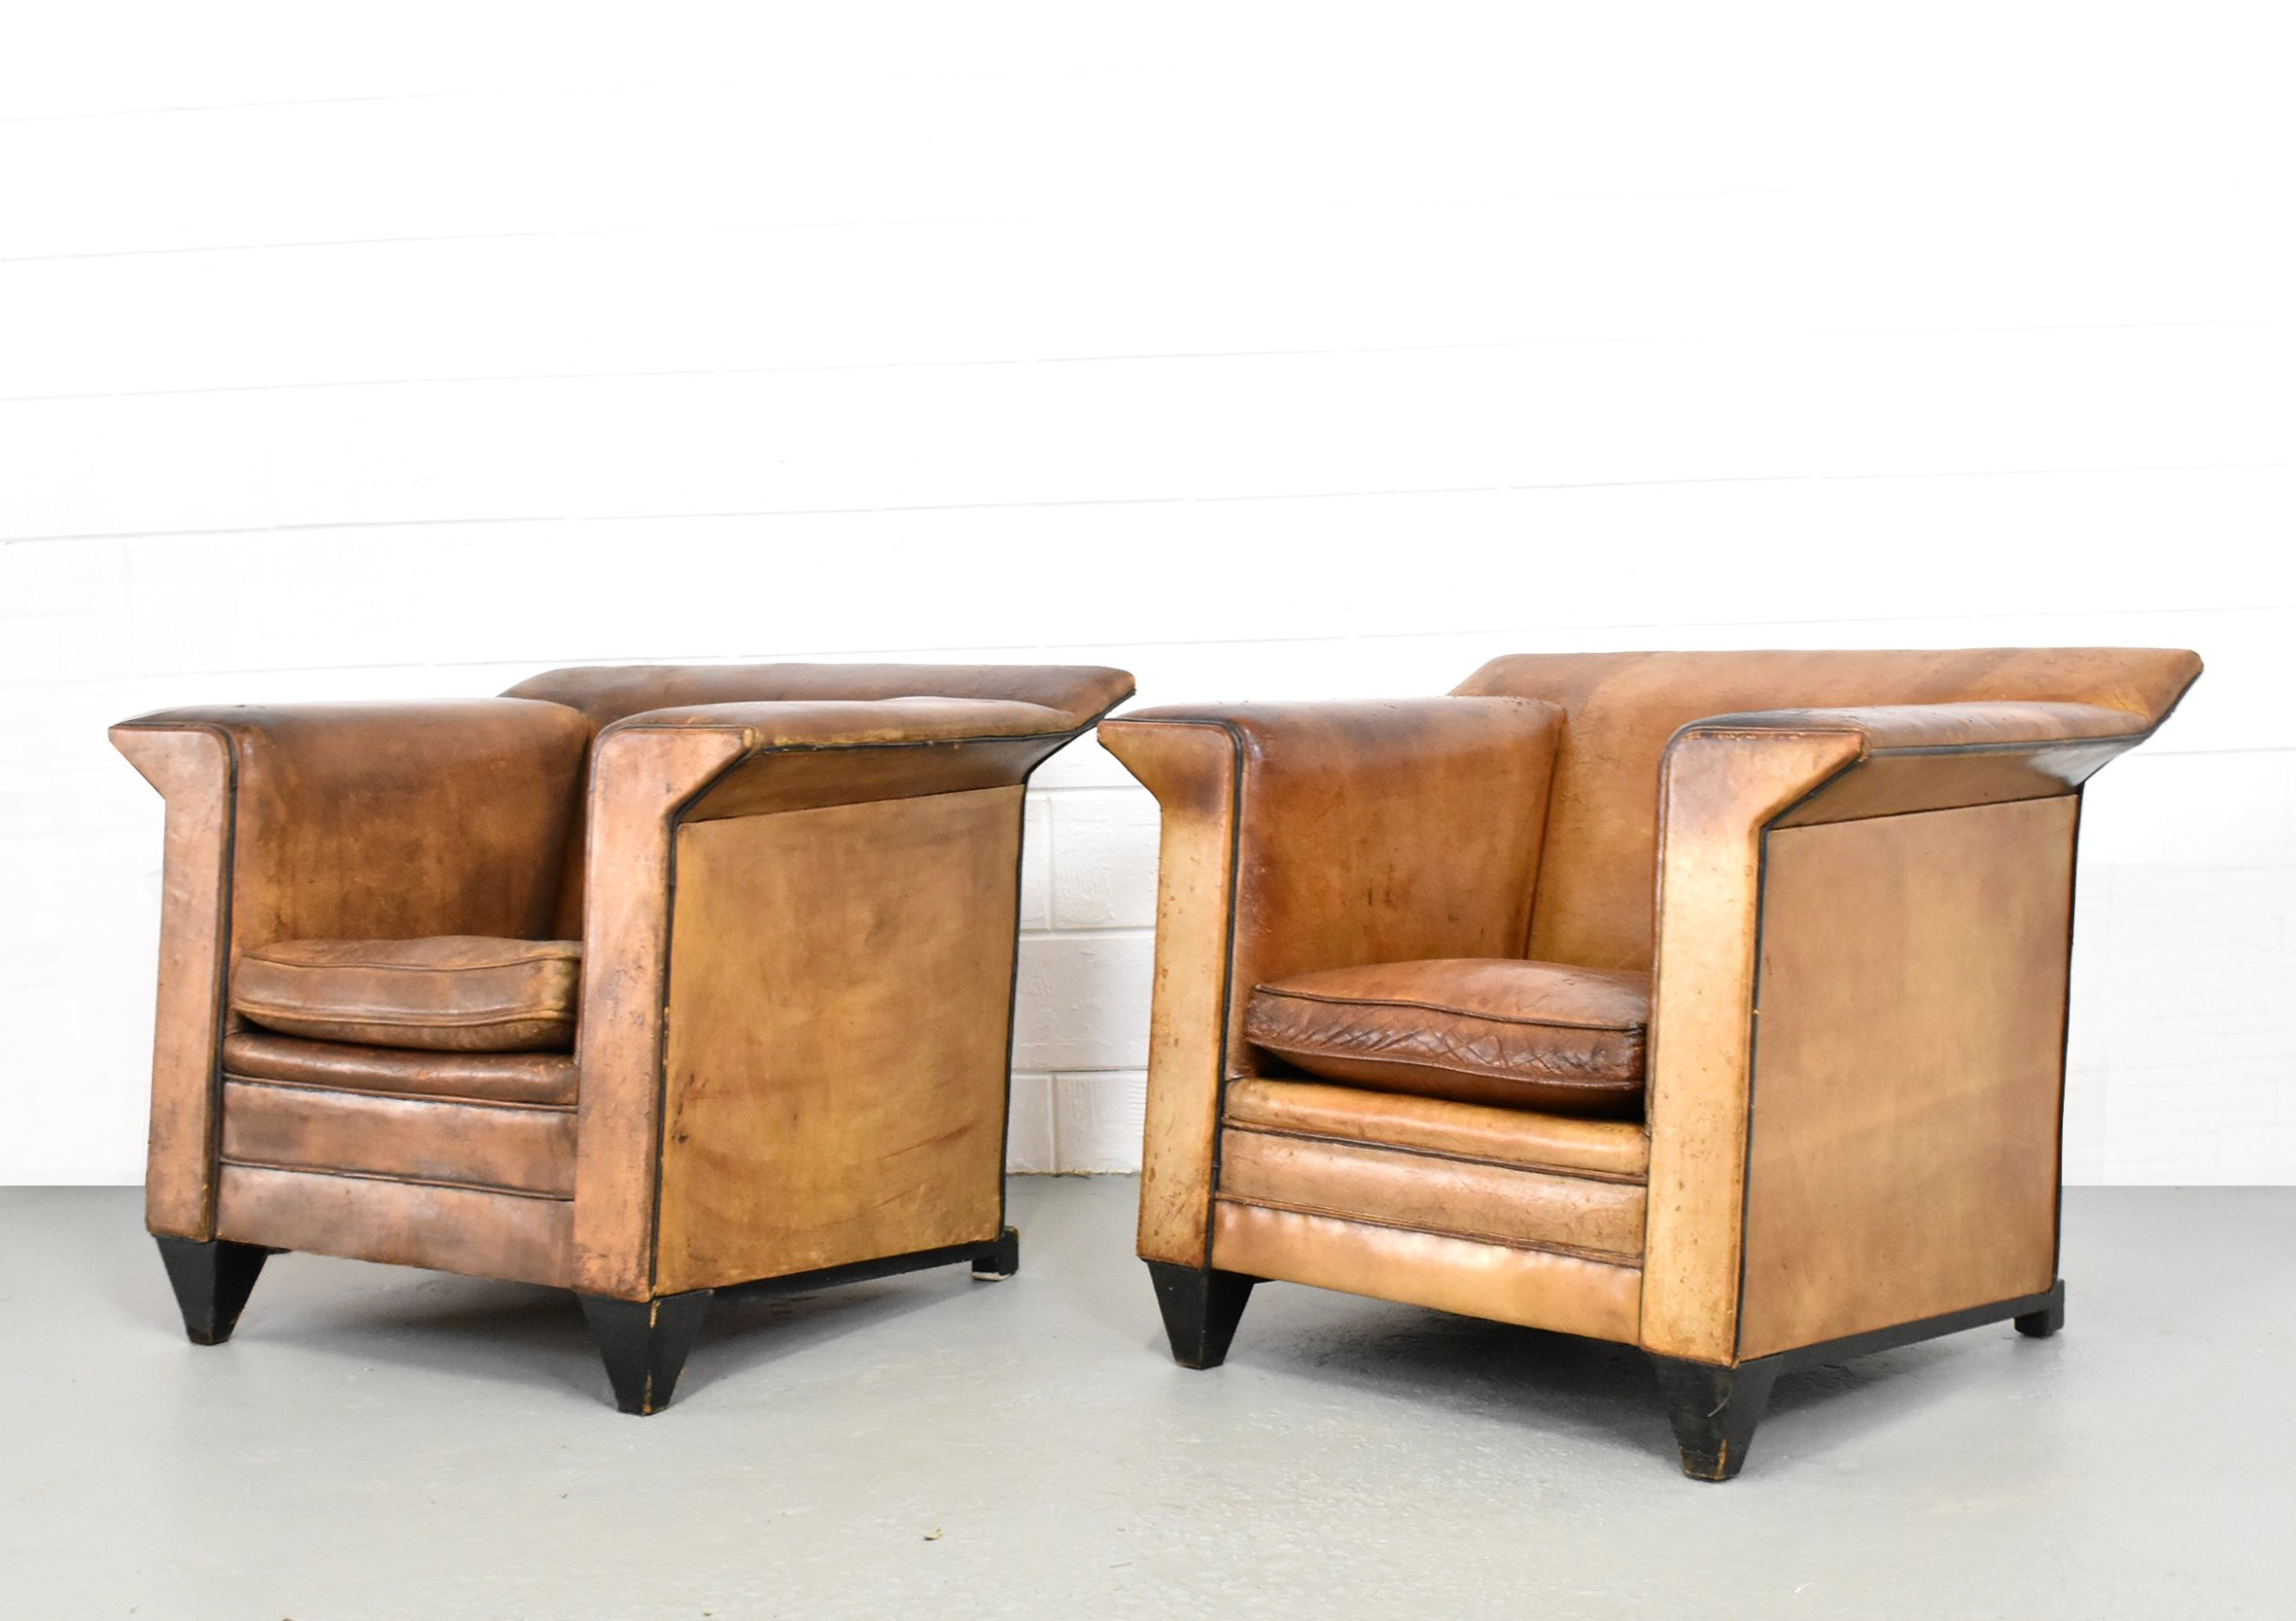 Set of bart van bekhoven leather lounge chairs s